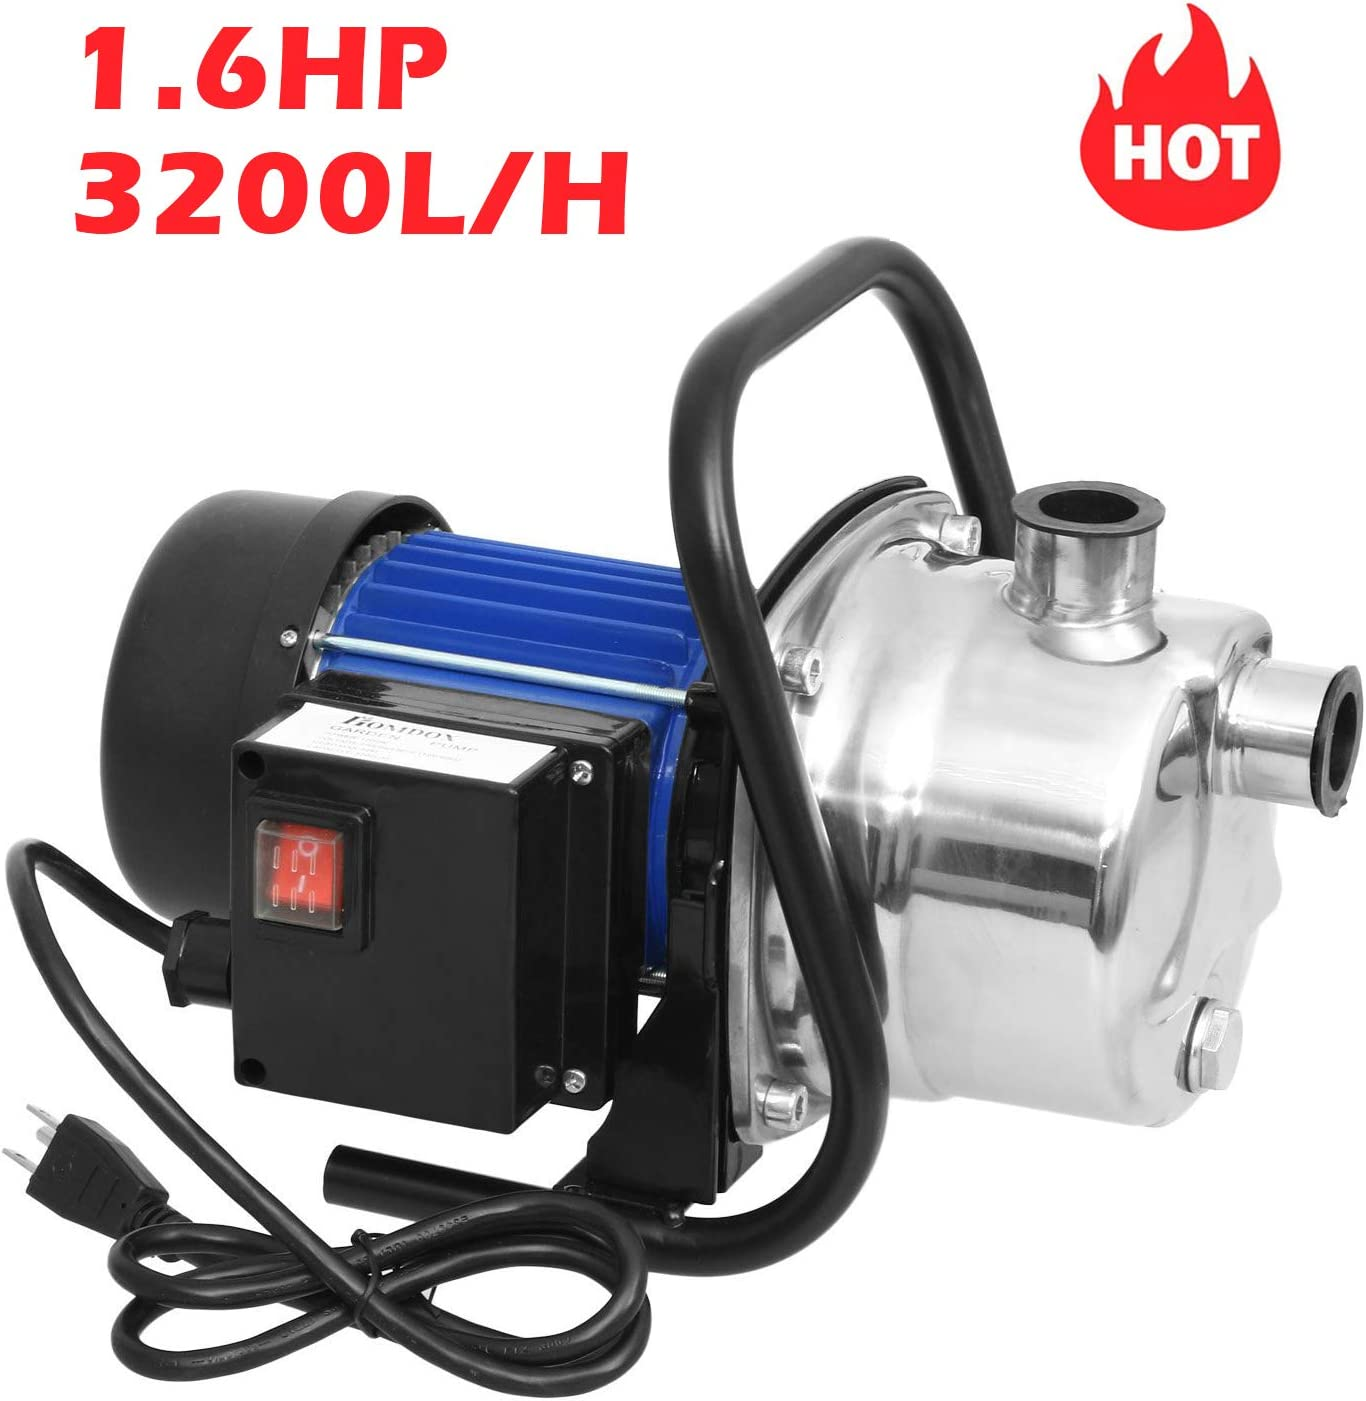 Homdox 1.6HP Stainless Shallow Well Pump Booster Pump Lawn Sprinkling Pump Sprinkler Water Pump for Home Garden Water Transport Irrigation 71FGUuOpHgLSL1500_